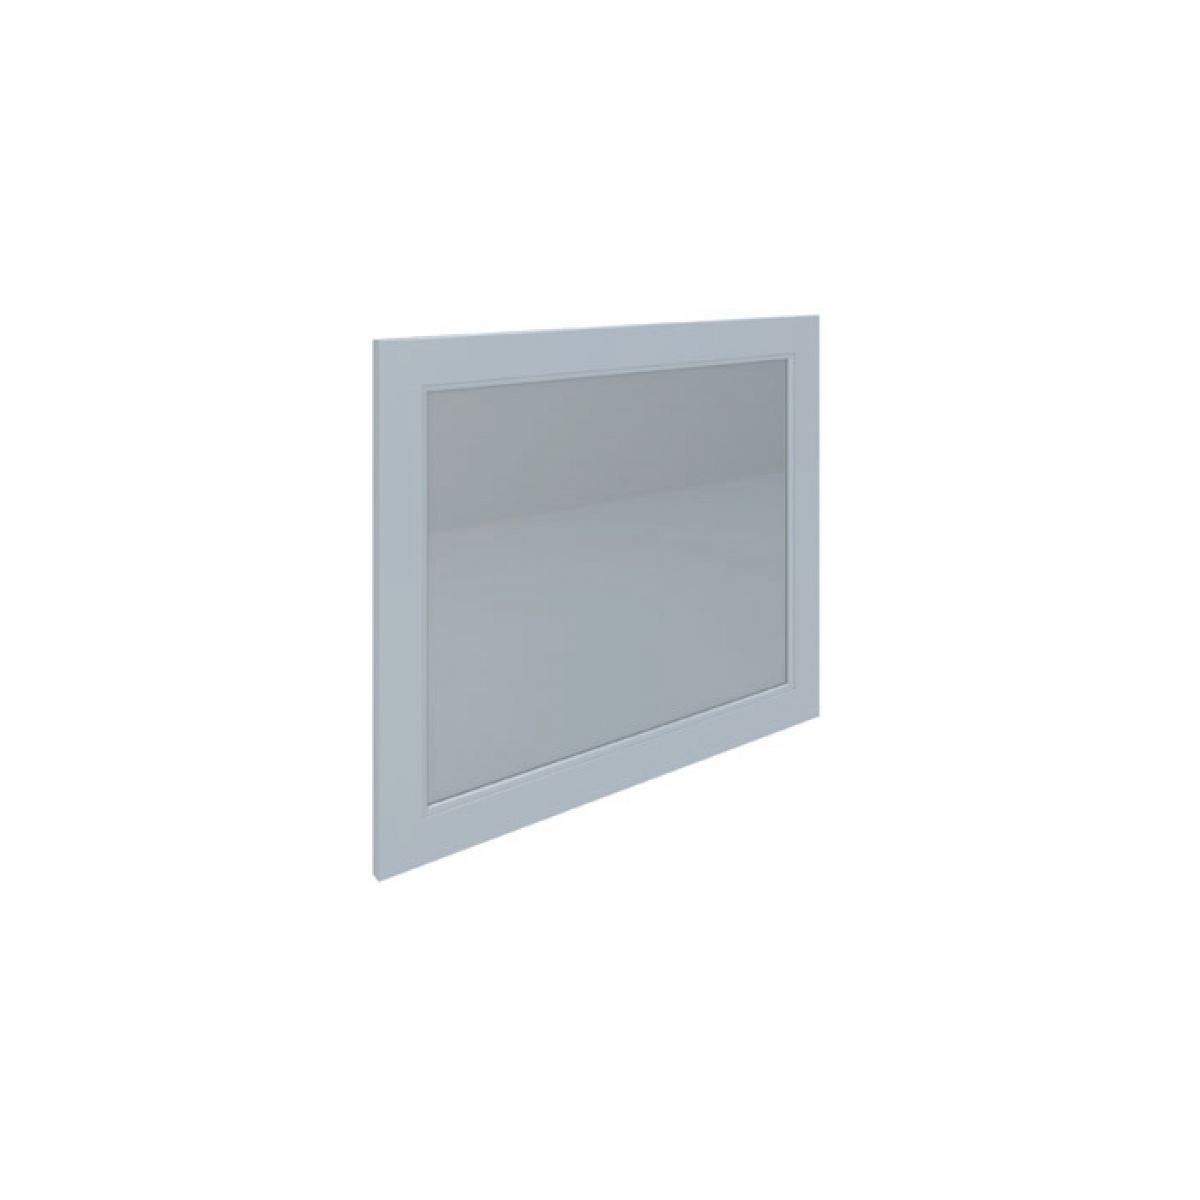 RAK Washington White Bathroom Mirror 800mm